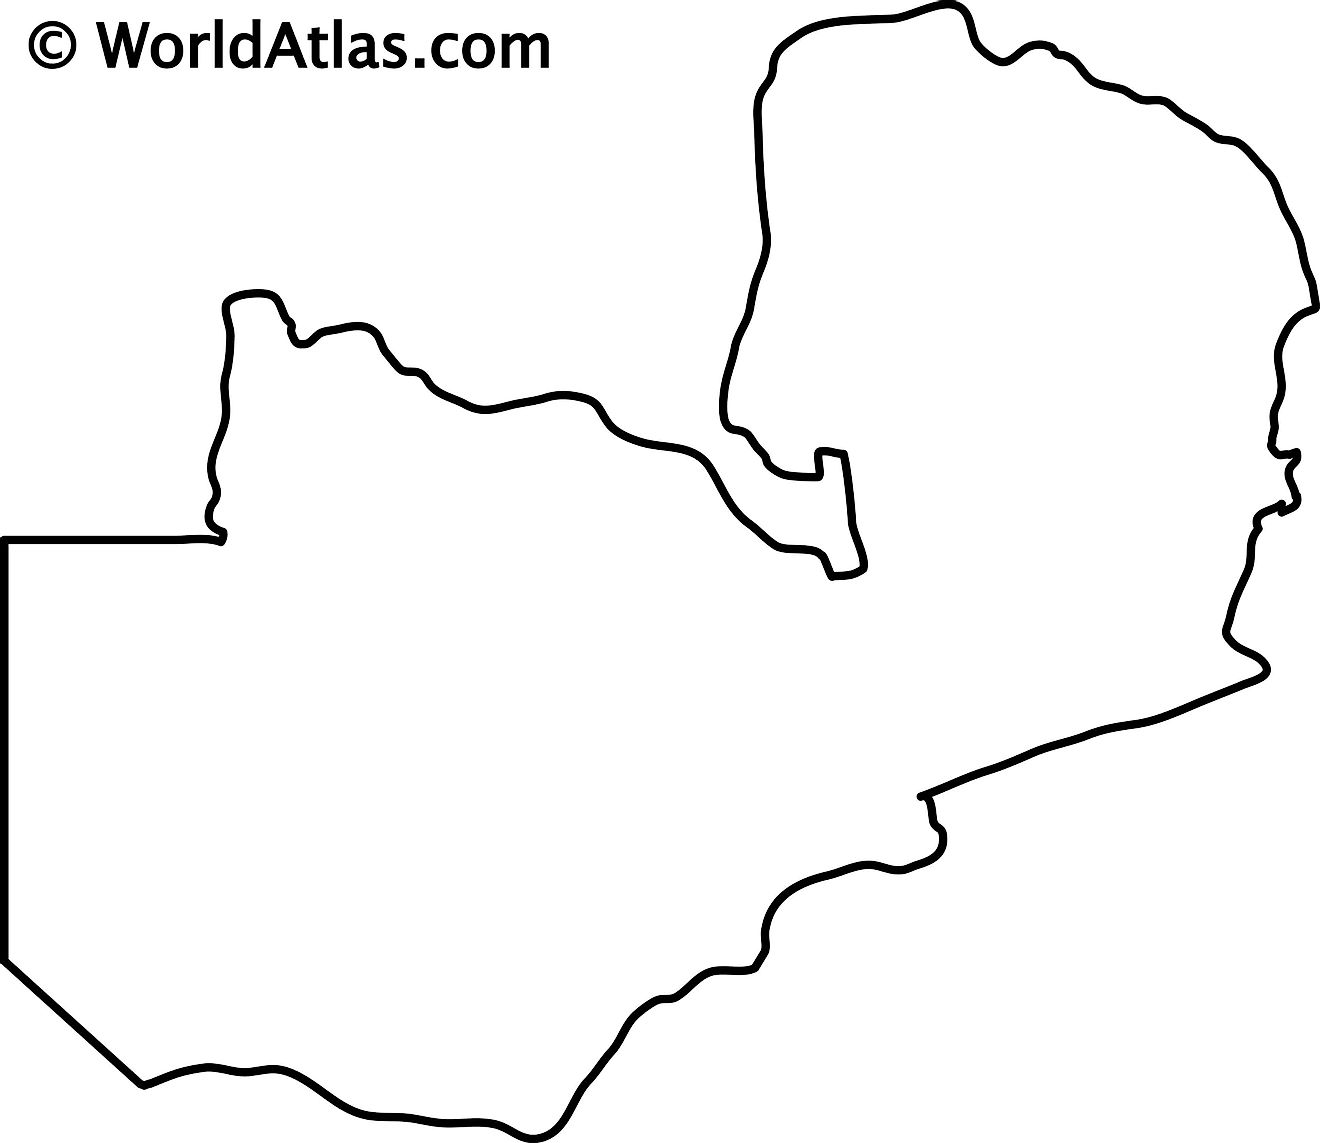 Blank Outline Map of Zambia